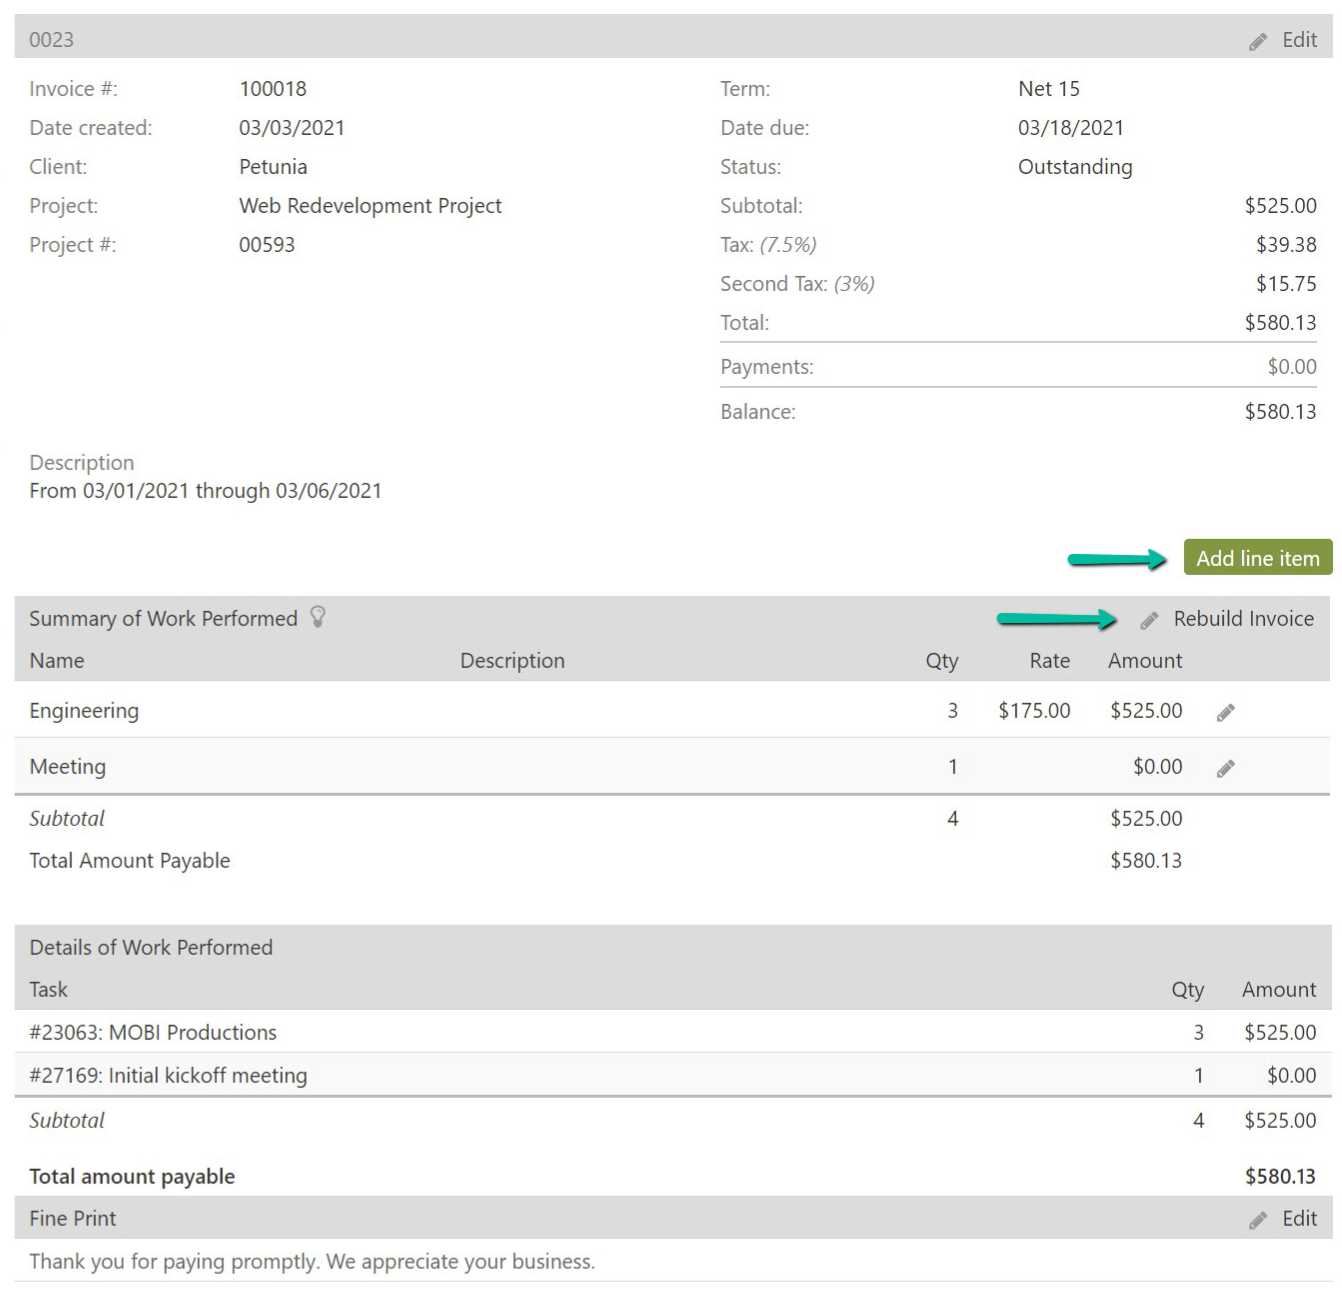 build-invoice-modify